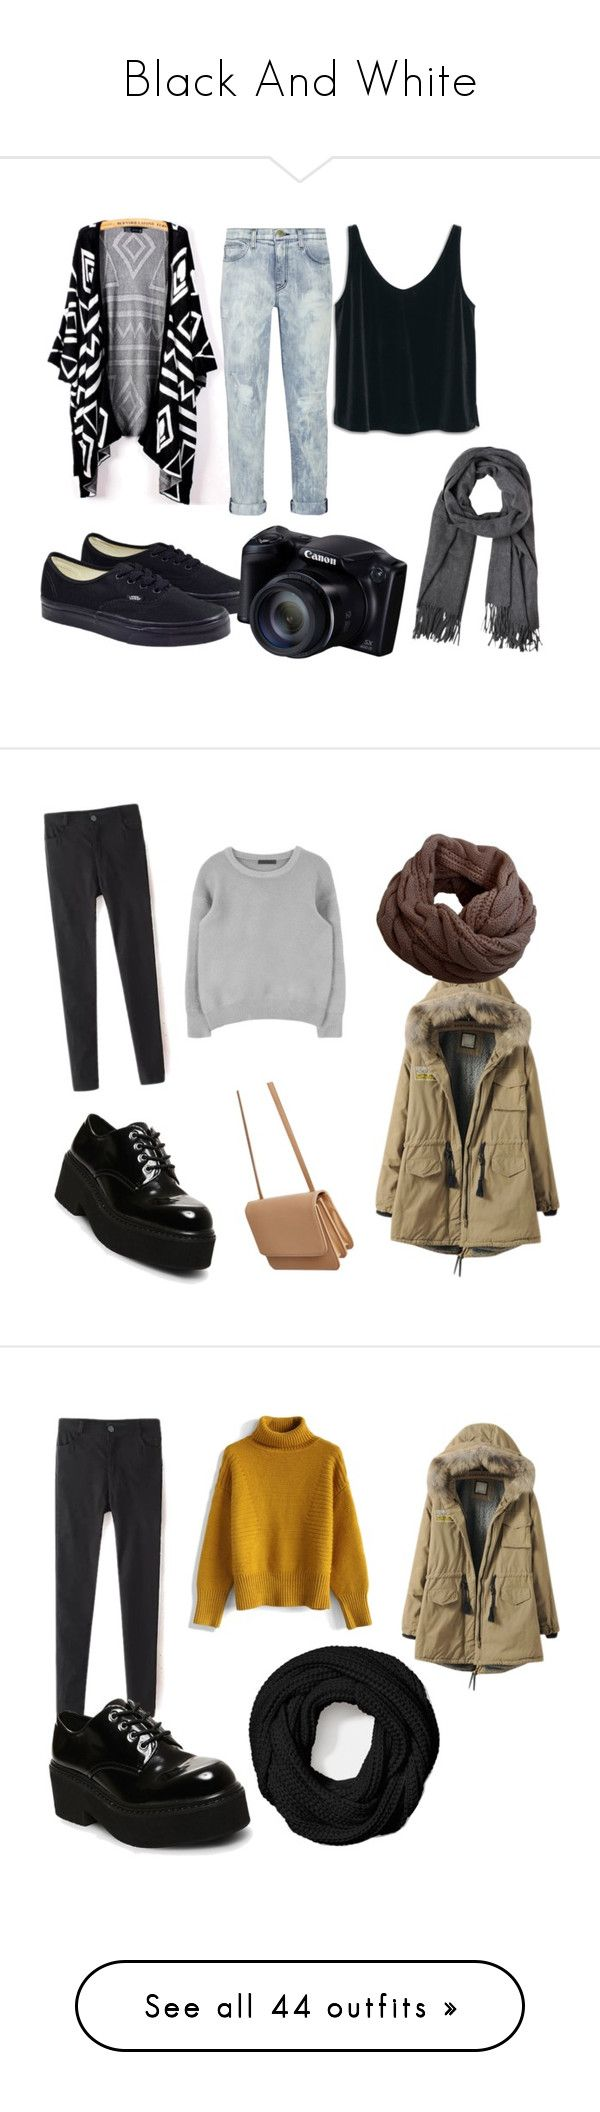 Black And White by caldenvazquez on Polyvore featuring polyvore moda style Current/Elliott MANGO Vans fashion clothing Steve Madden Silence + Noise Humble Chic Chicwish Coach Zara Iris & Ink MICHAEL Michael Kors Chanel Ray-Ban Glamorous Ted Baker H&M City Chic Dr. Martens Lucky Brand ABS by Allen Schwartz Tod's plus size clothing ljepota John Lewis Jil Sander Prada Smashbox ASOS Curve Victoria, Victoria Beckham Converse Stella & Dot WithChic Kate Spade Sigma Balmain Évocateur Joseph Kenzo…